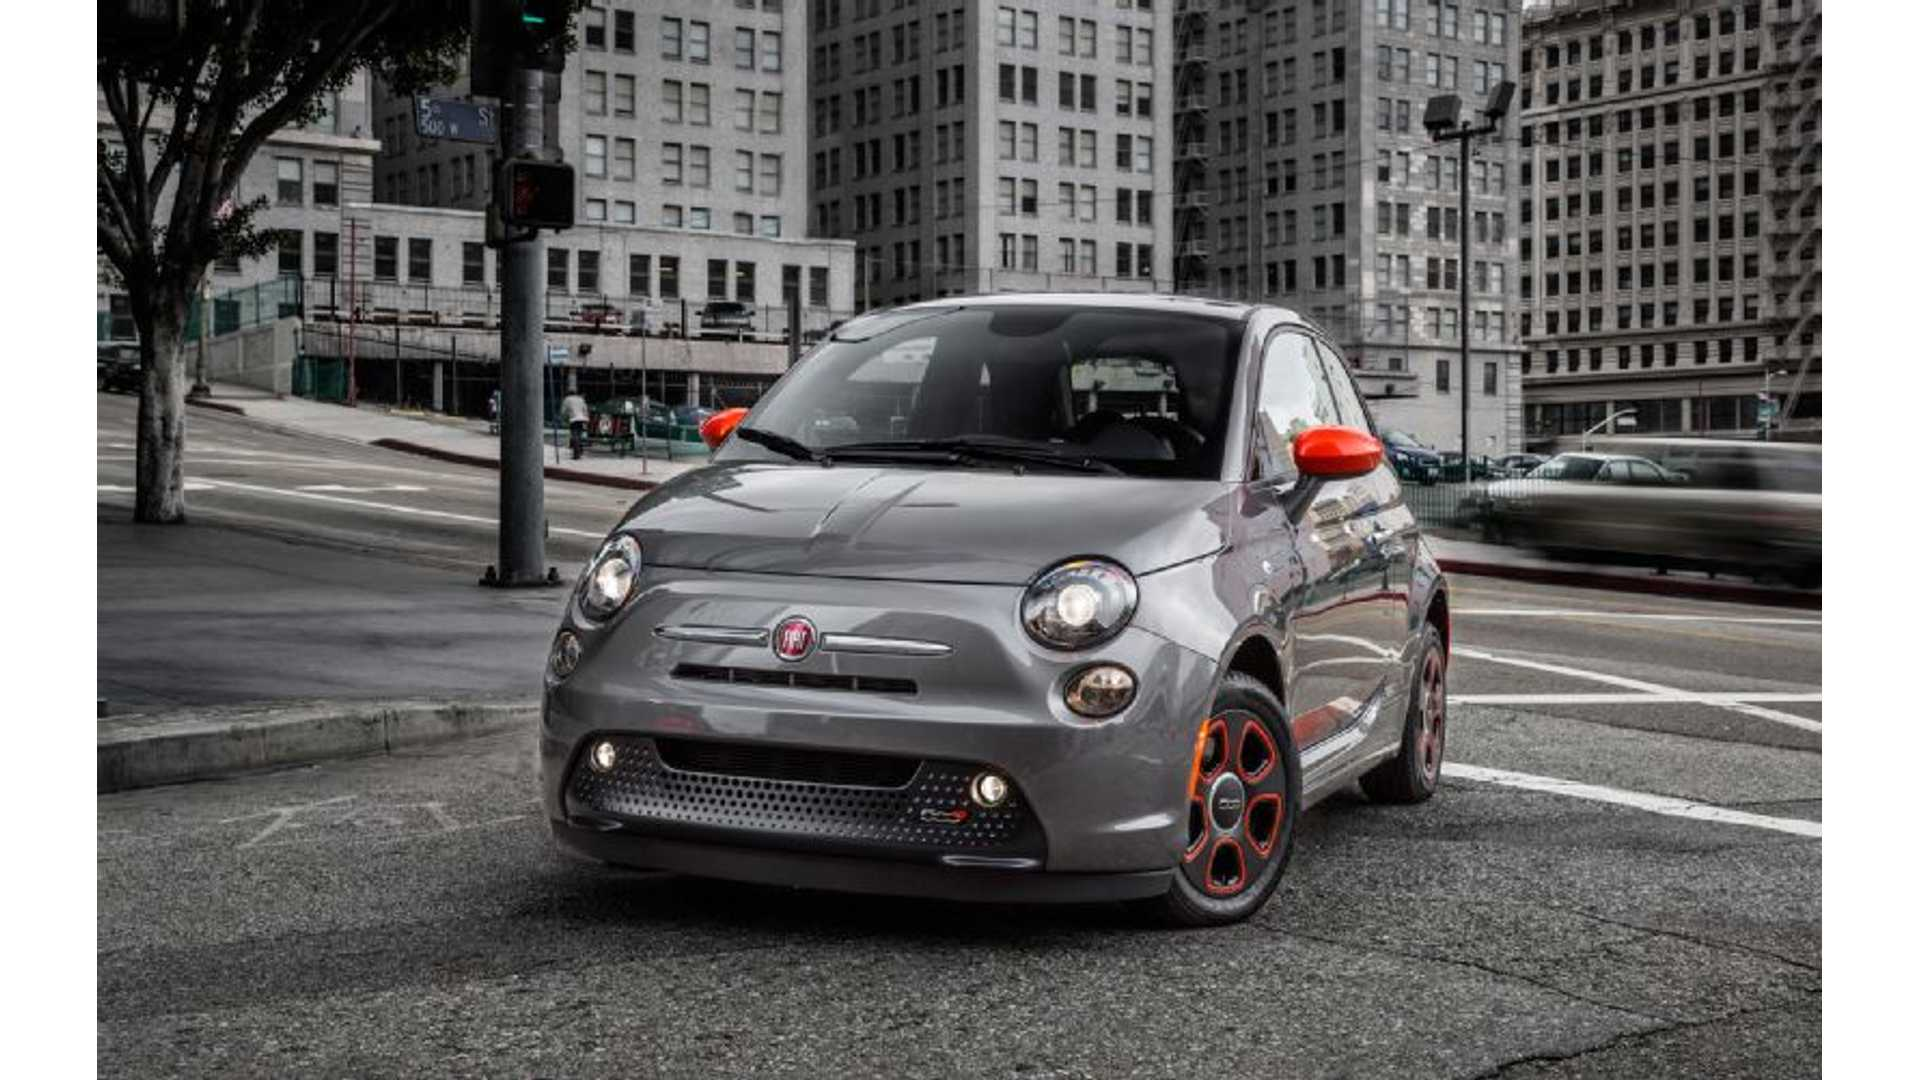 Chrysler Fiat Reluctant To Invest In Electric Vehicles Until Next Decade Or When Ers Are Willing Pay The Cost